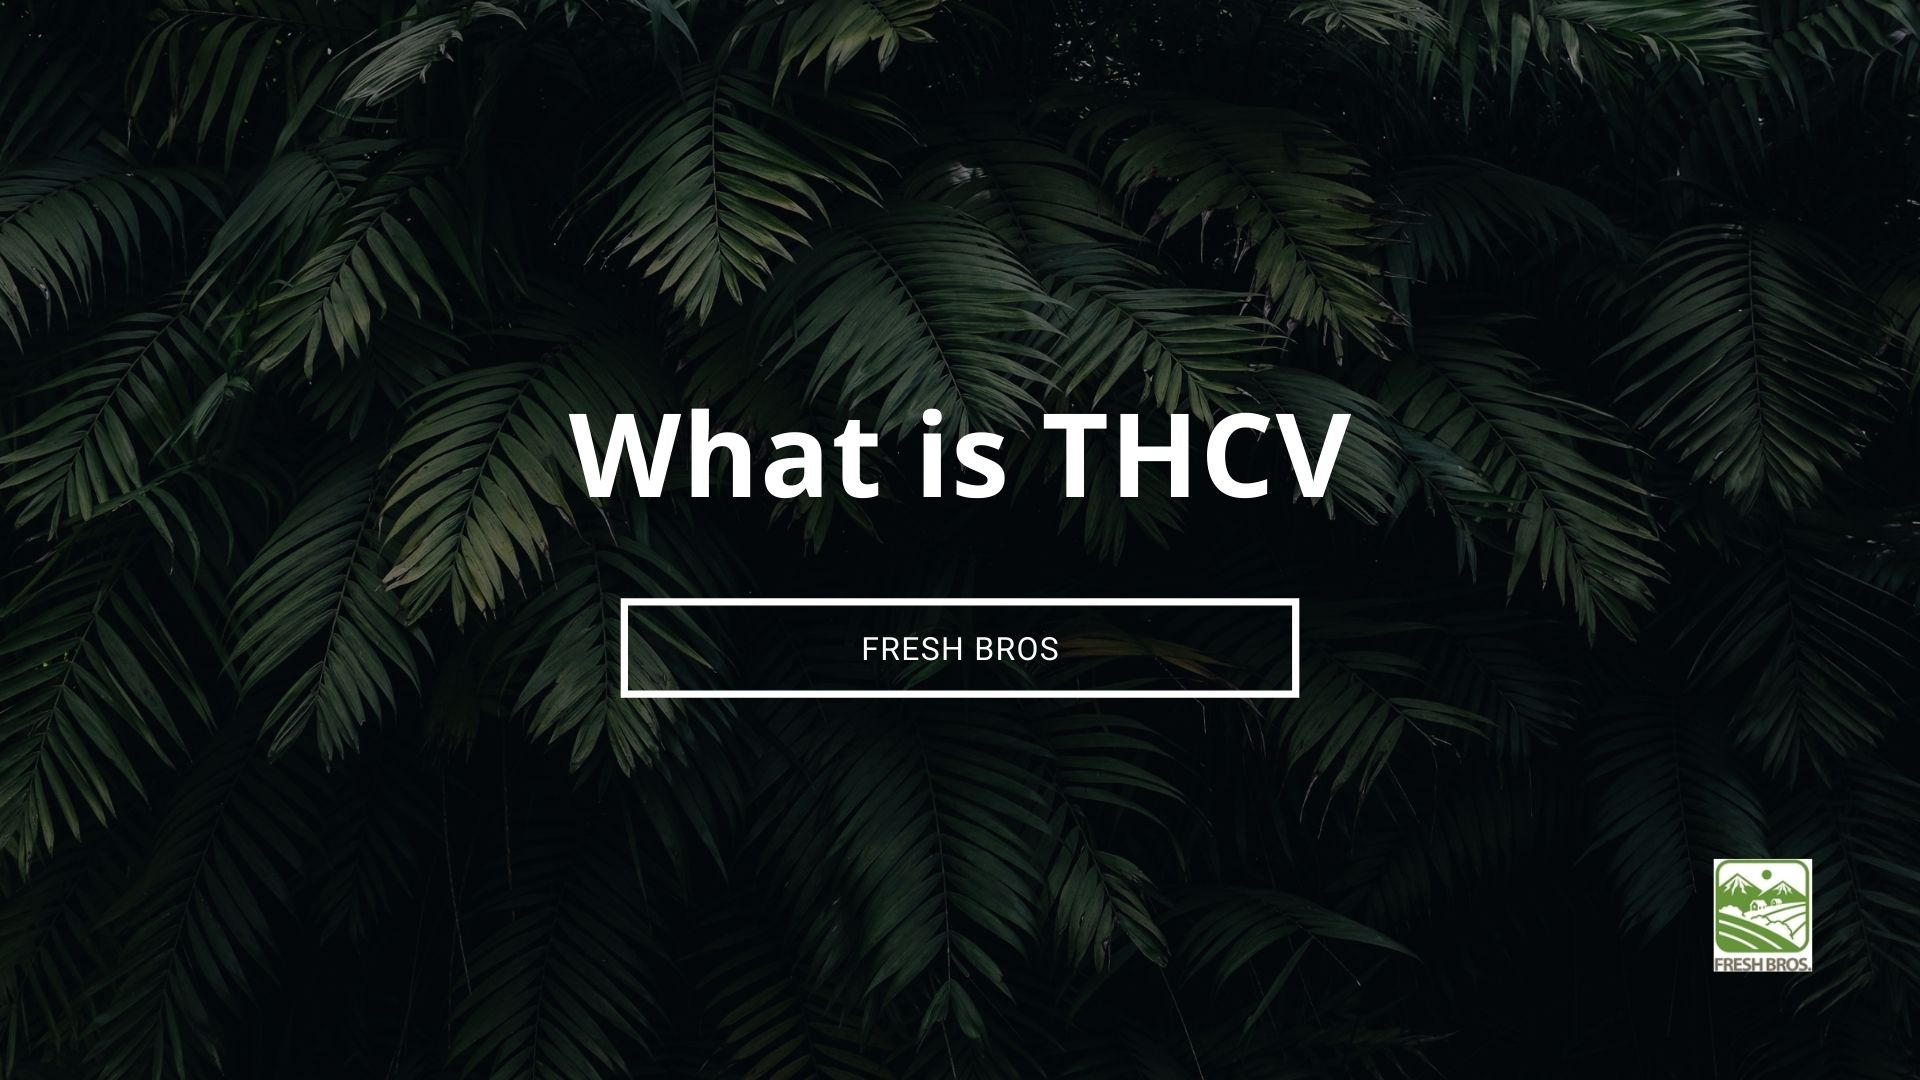 What is THCV: Everything You Need to Know About THCV, the Weight Loss Cannabinoid